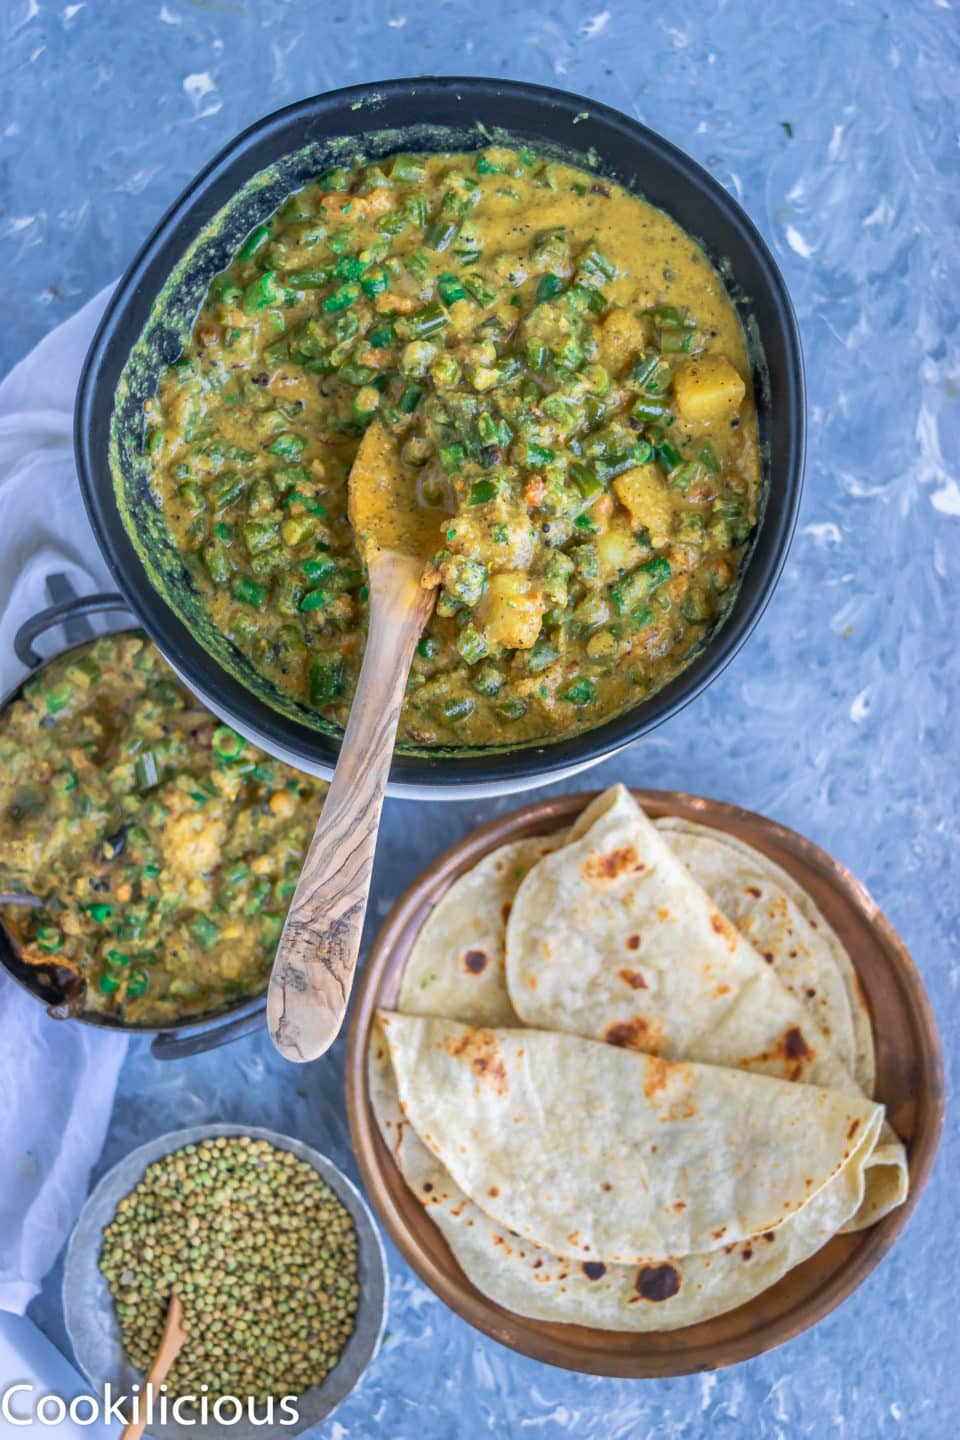 a bowl of Green Beans & Potato Gravy resting next to a plate full of chapati